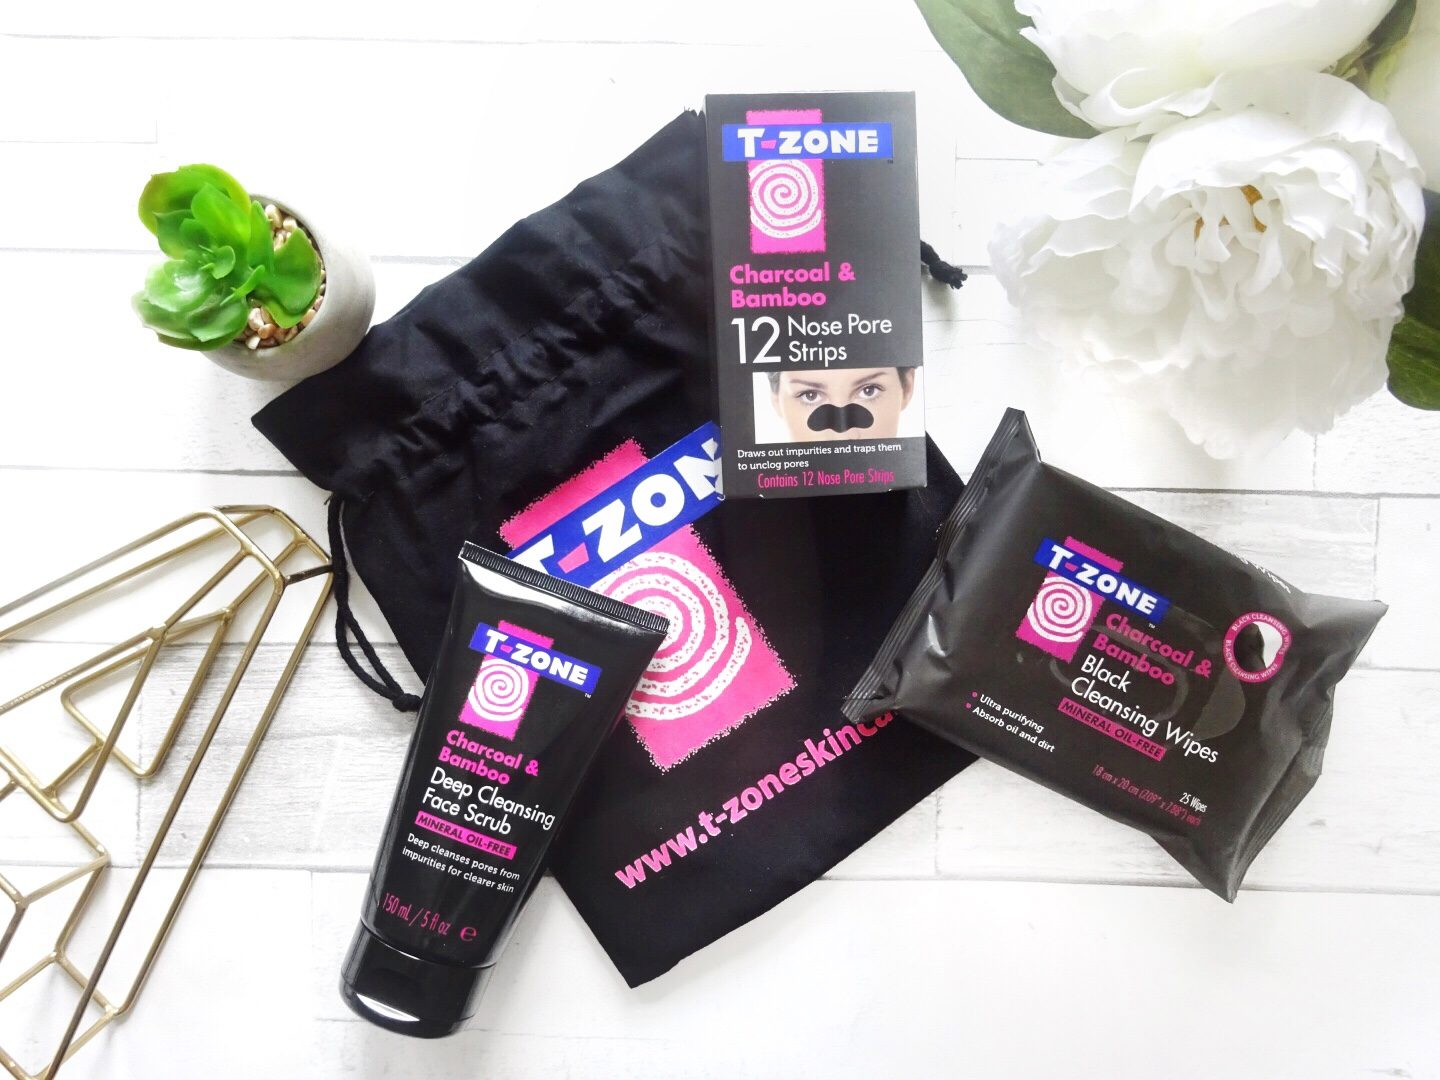 T-Zone Charcoal & Bamboo Range REVIEW